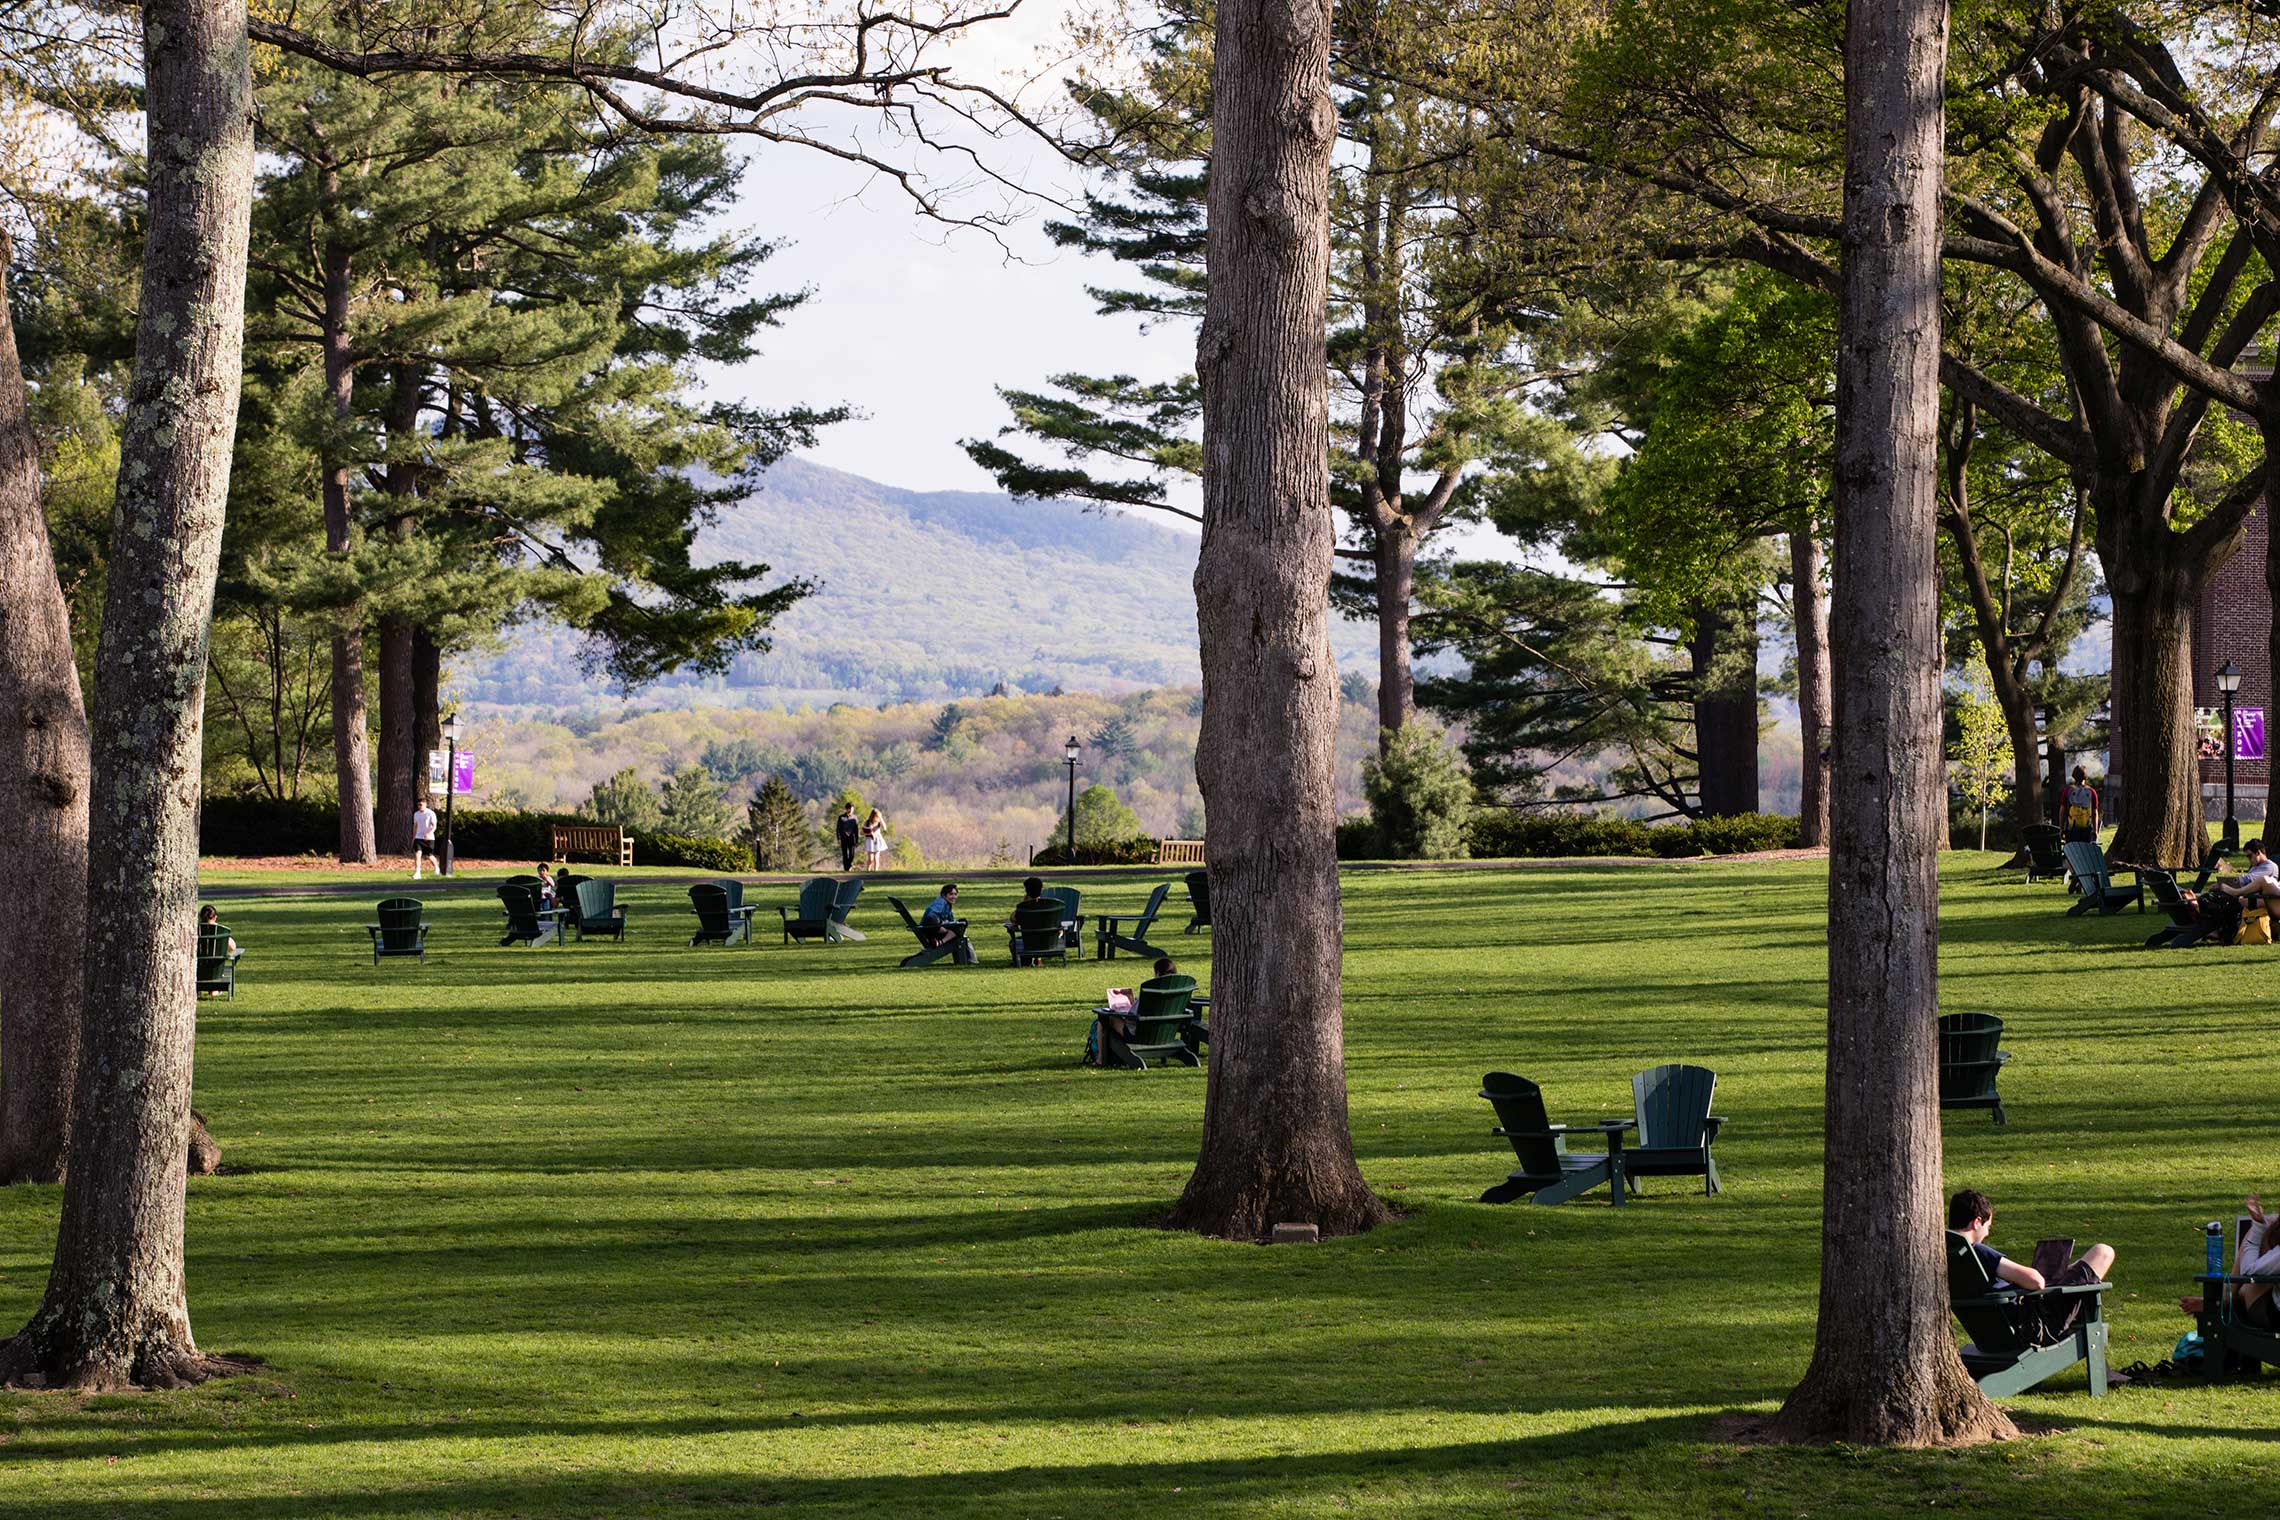 Adriondack chairs on the main quad on a sunny spring day.